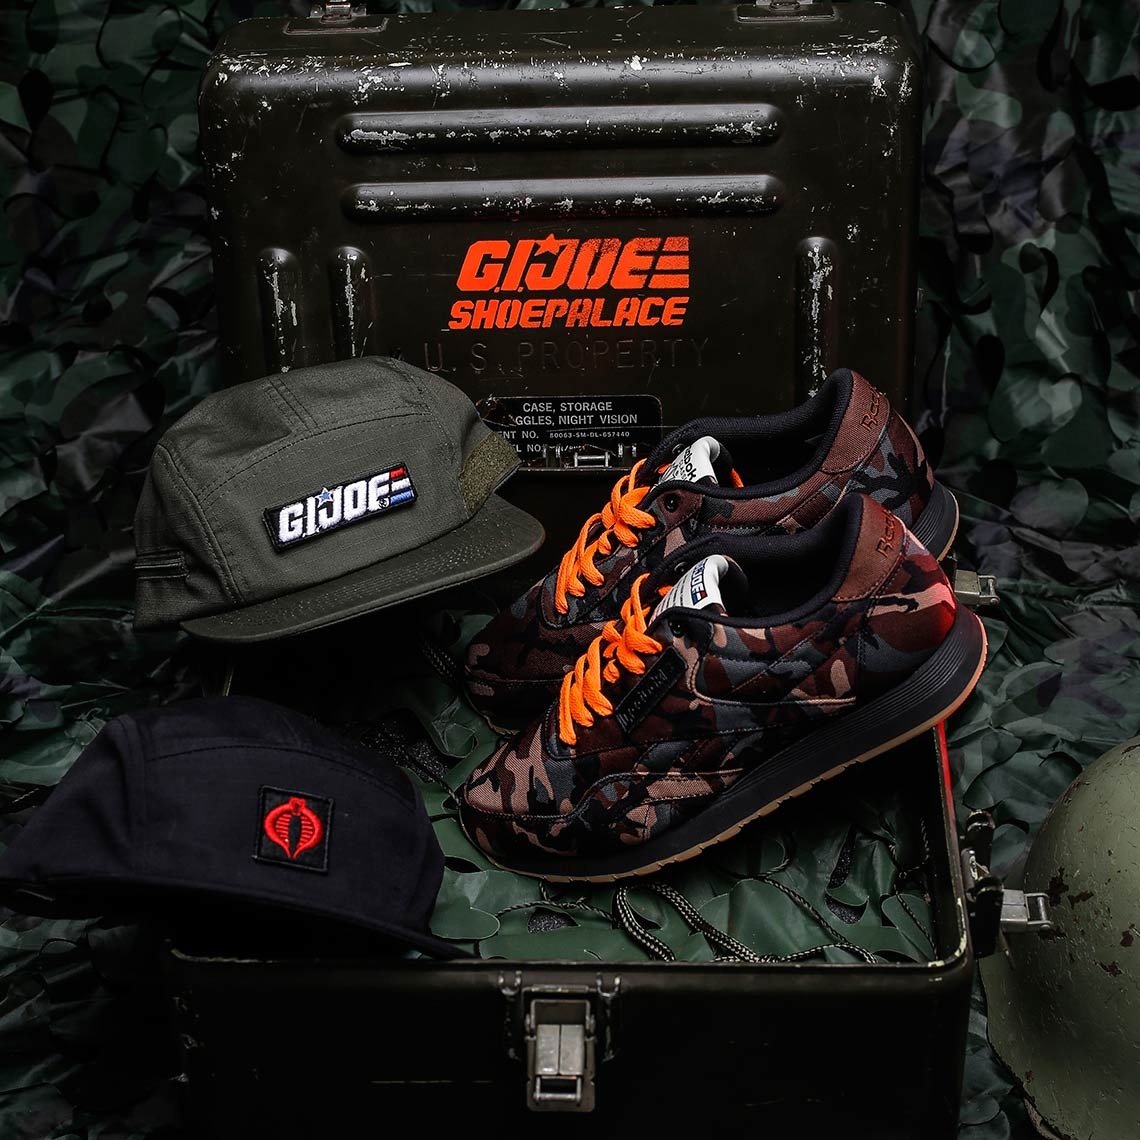 8cd9a67c151 Shoe Palace Reebok GI Joe Shoe and Hats